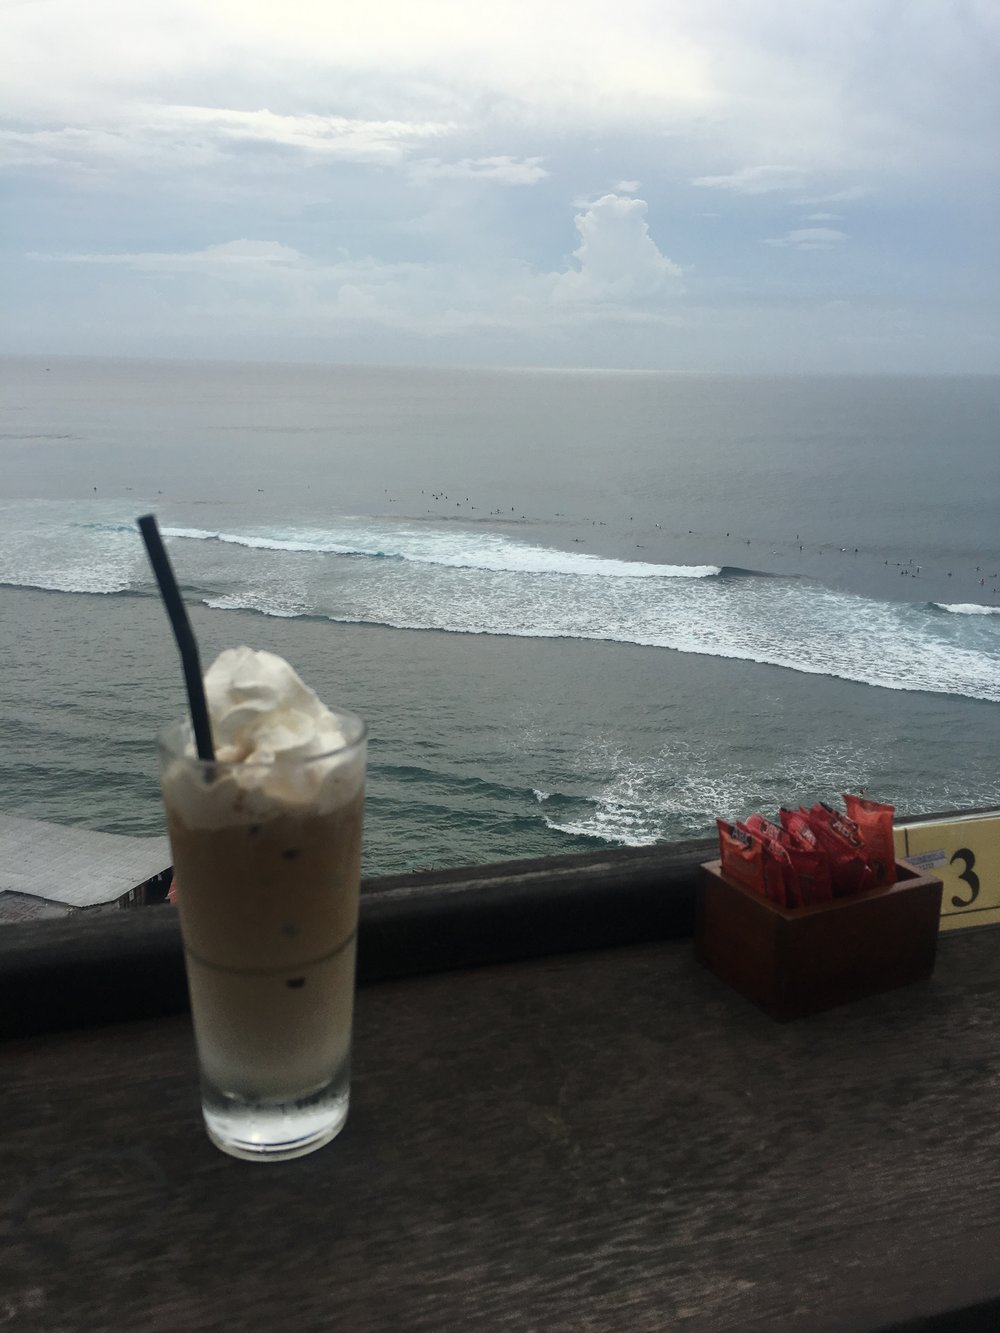 Overlooking the Uluwatu beach - the tiny dots in the ocean are surfers